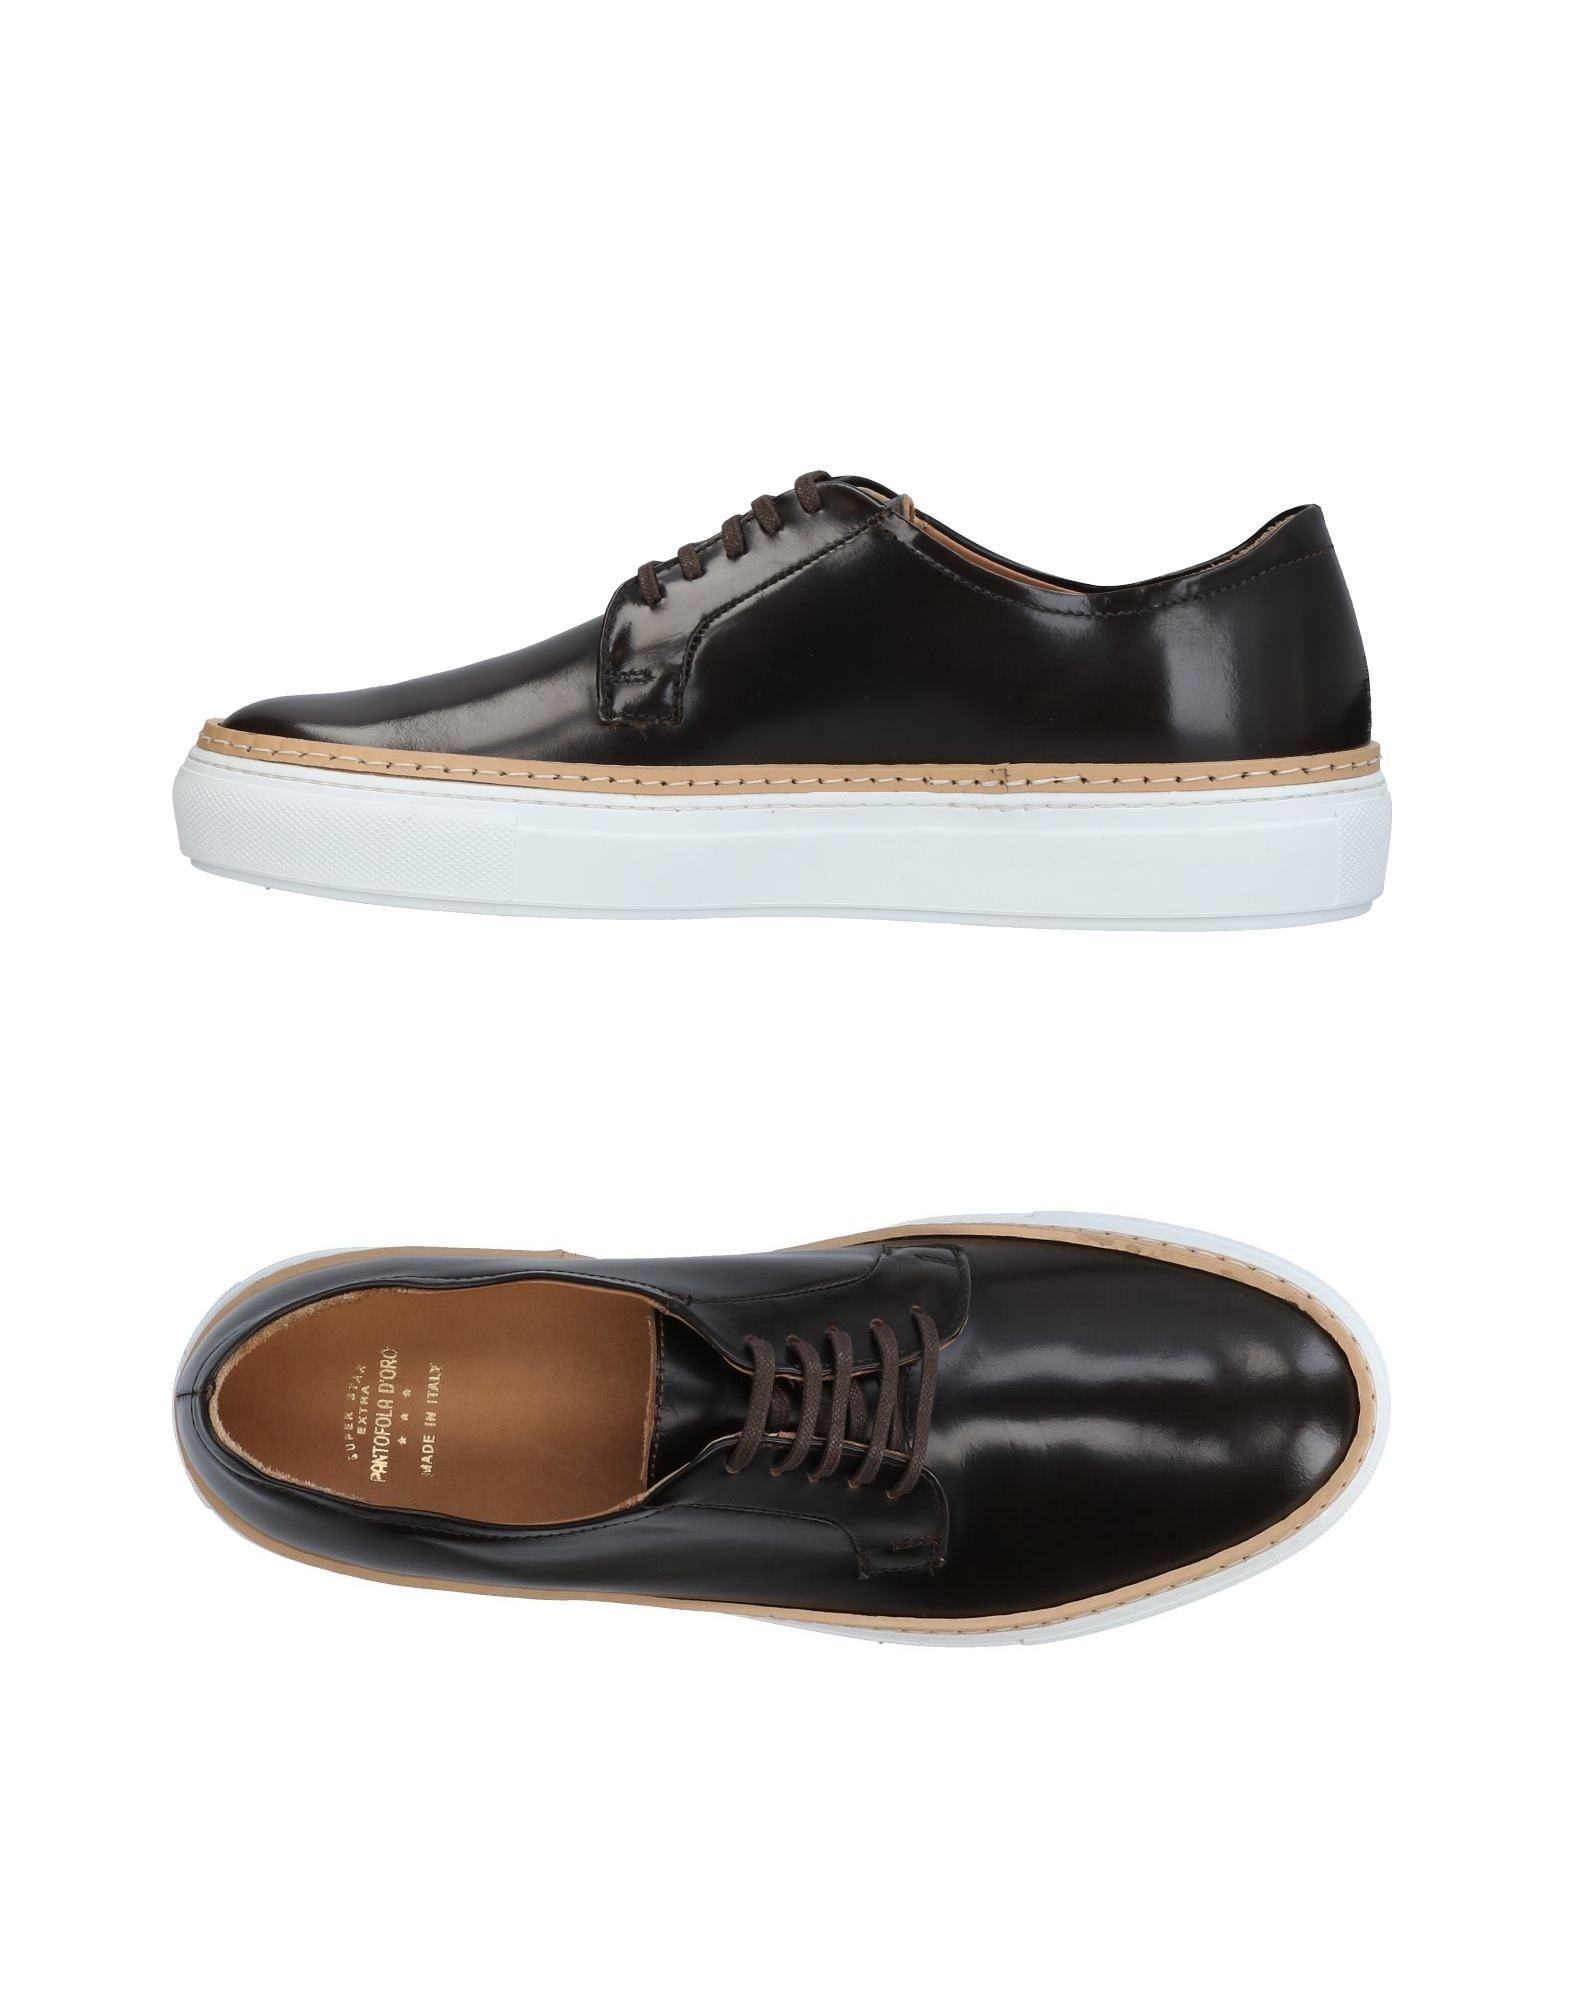 Pantofola D'oro Sneakers - Men Pantofola D'oro Sneakers on online on Sneakers  Canada - 11456280LG d4e7f7